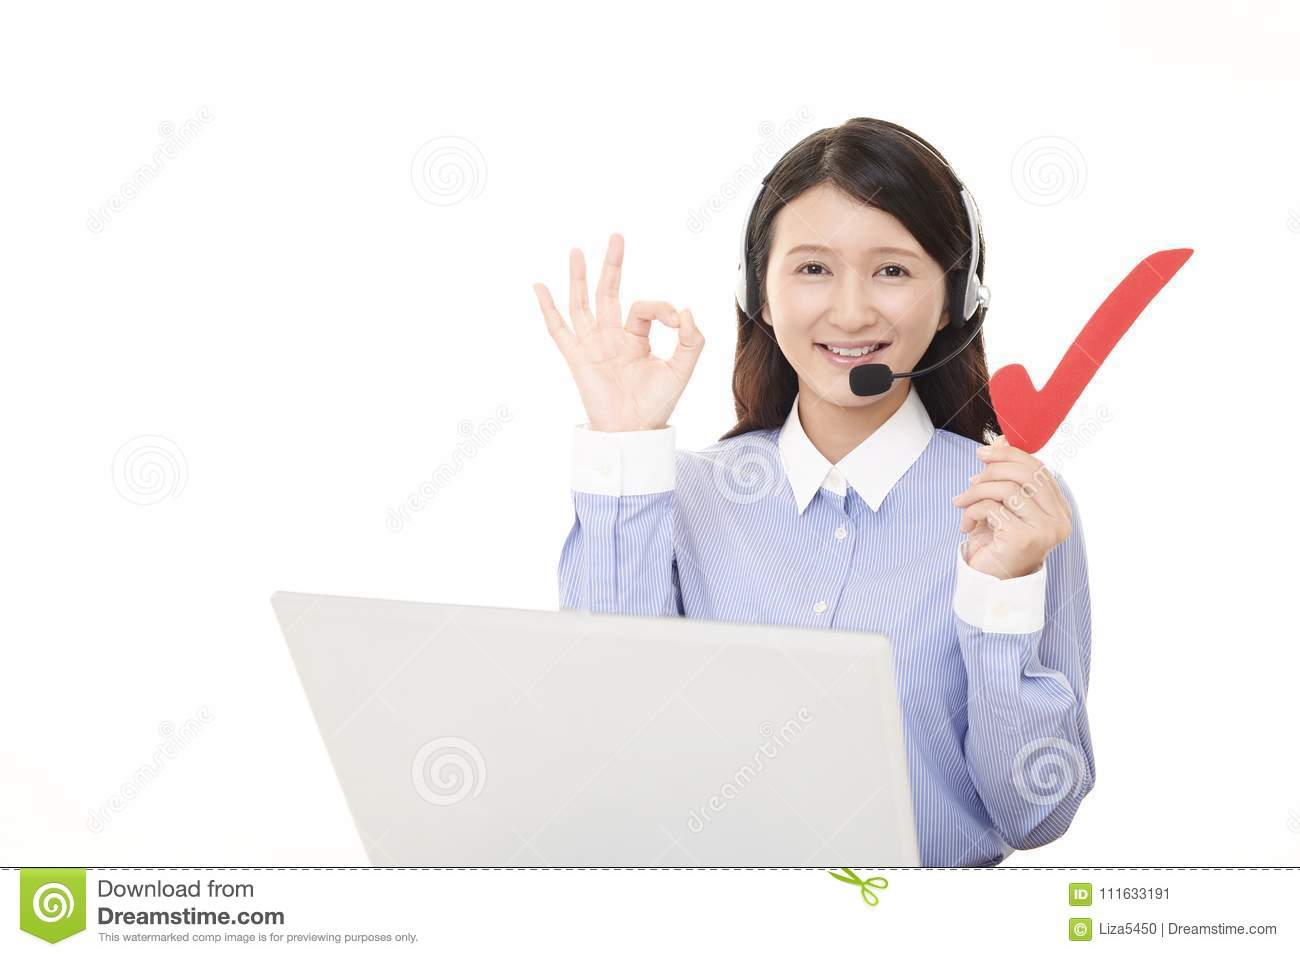 Smiling call center operator with a check mark